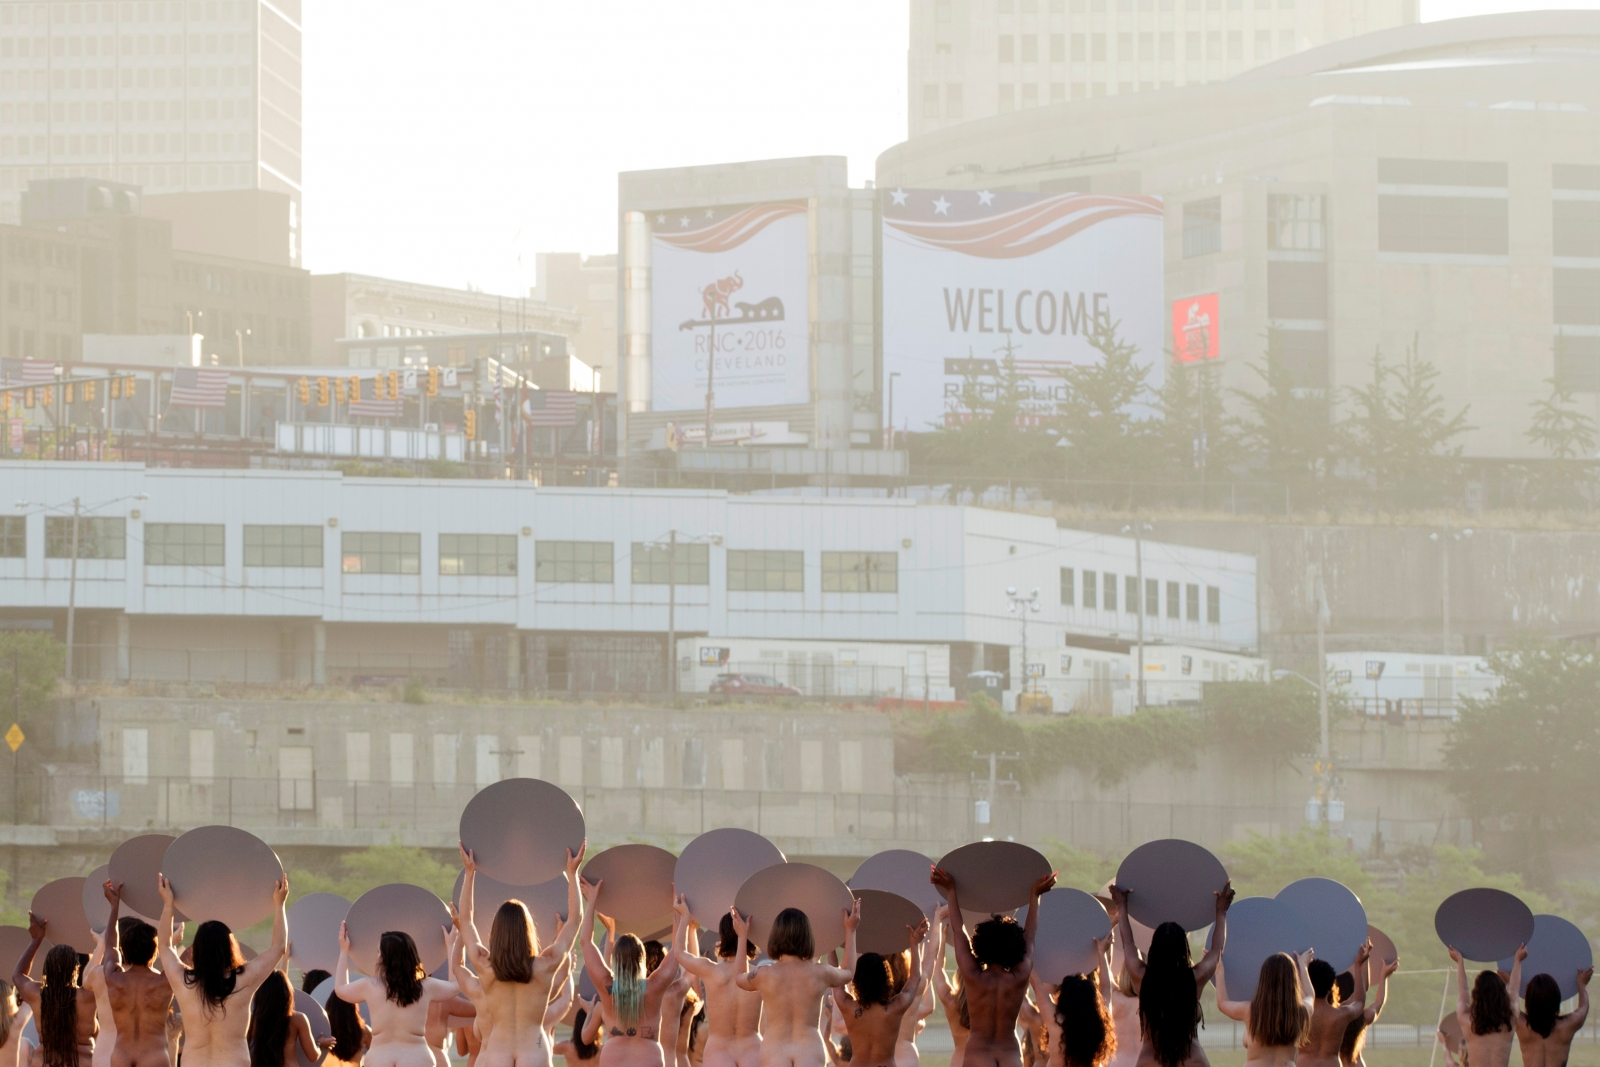 Cleveland nude protest